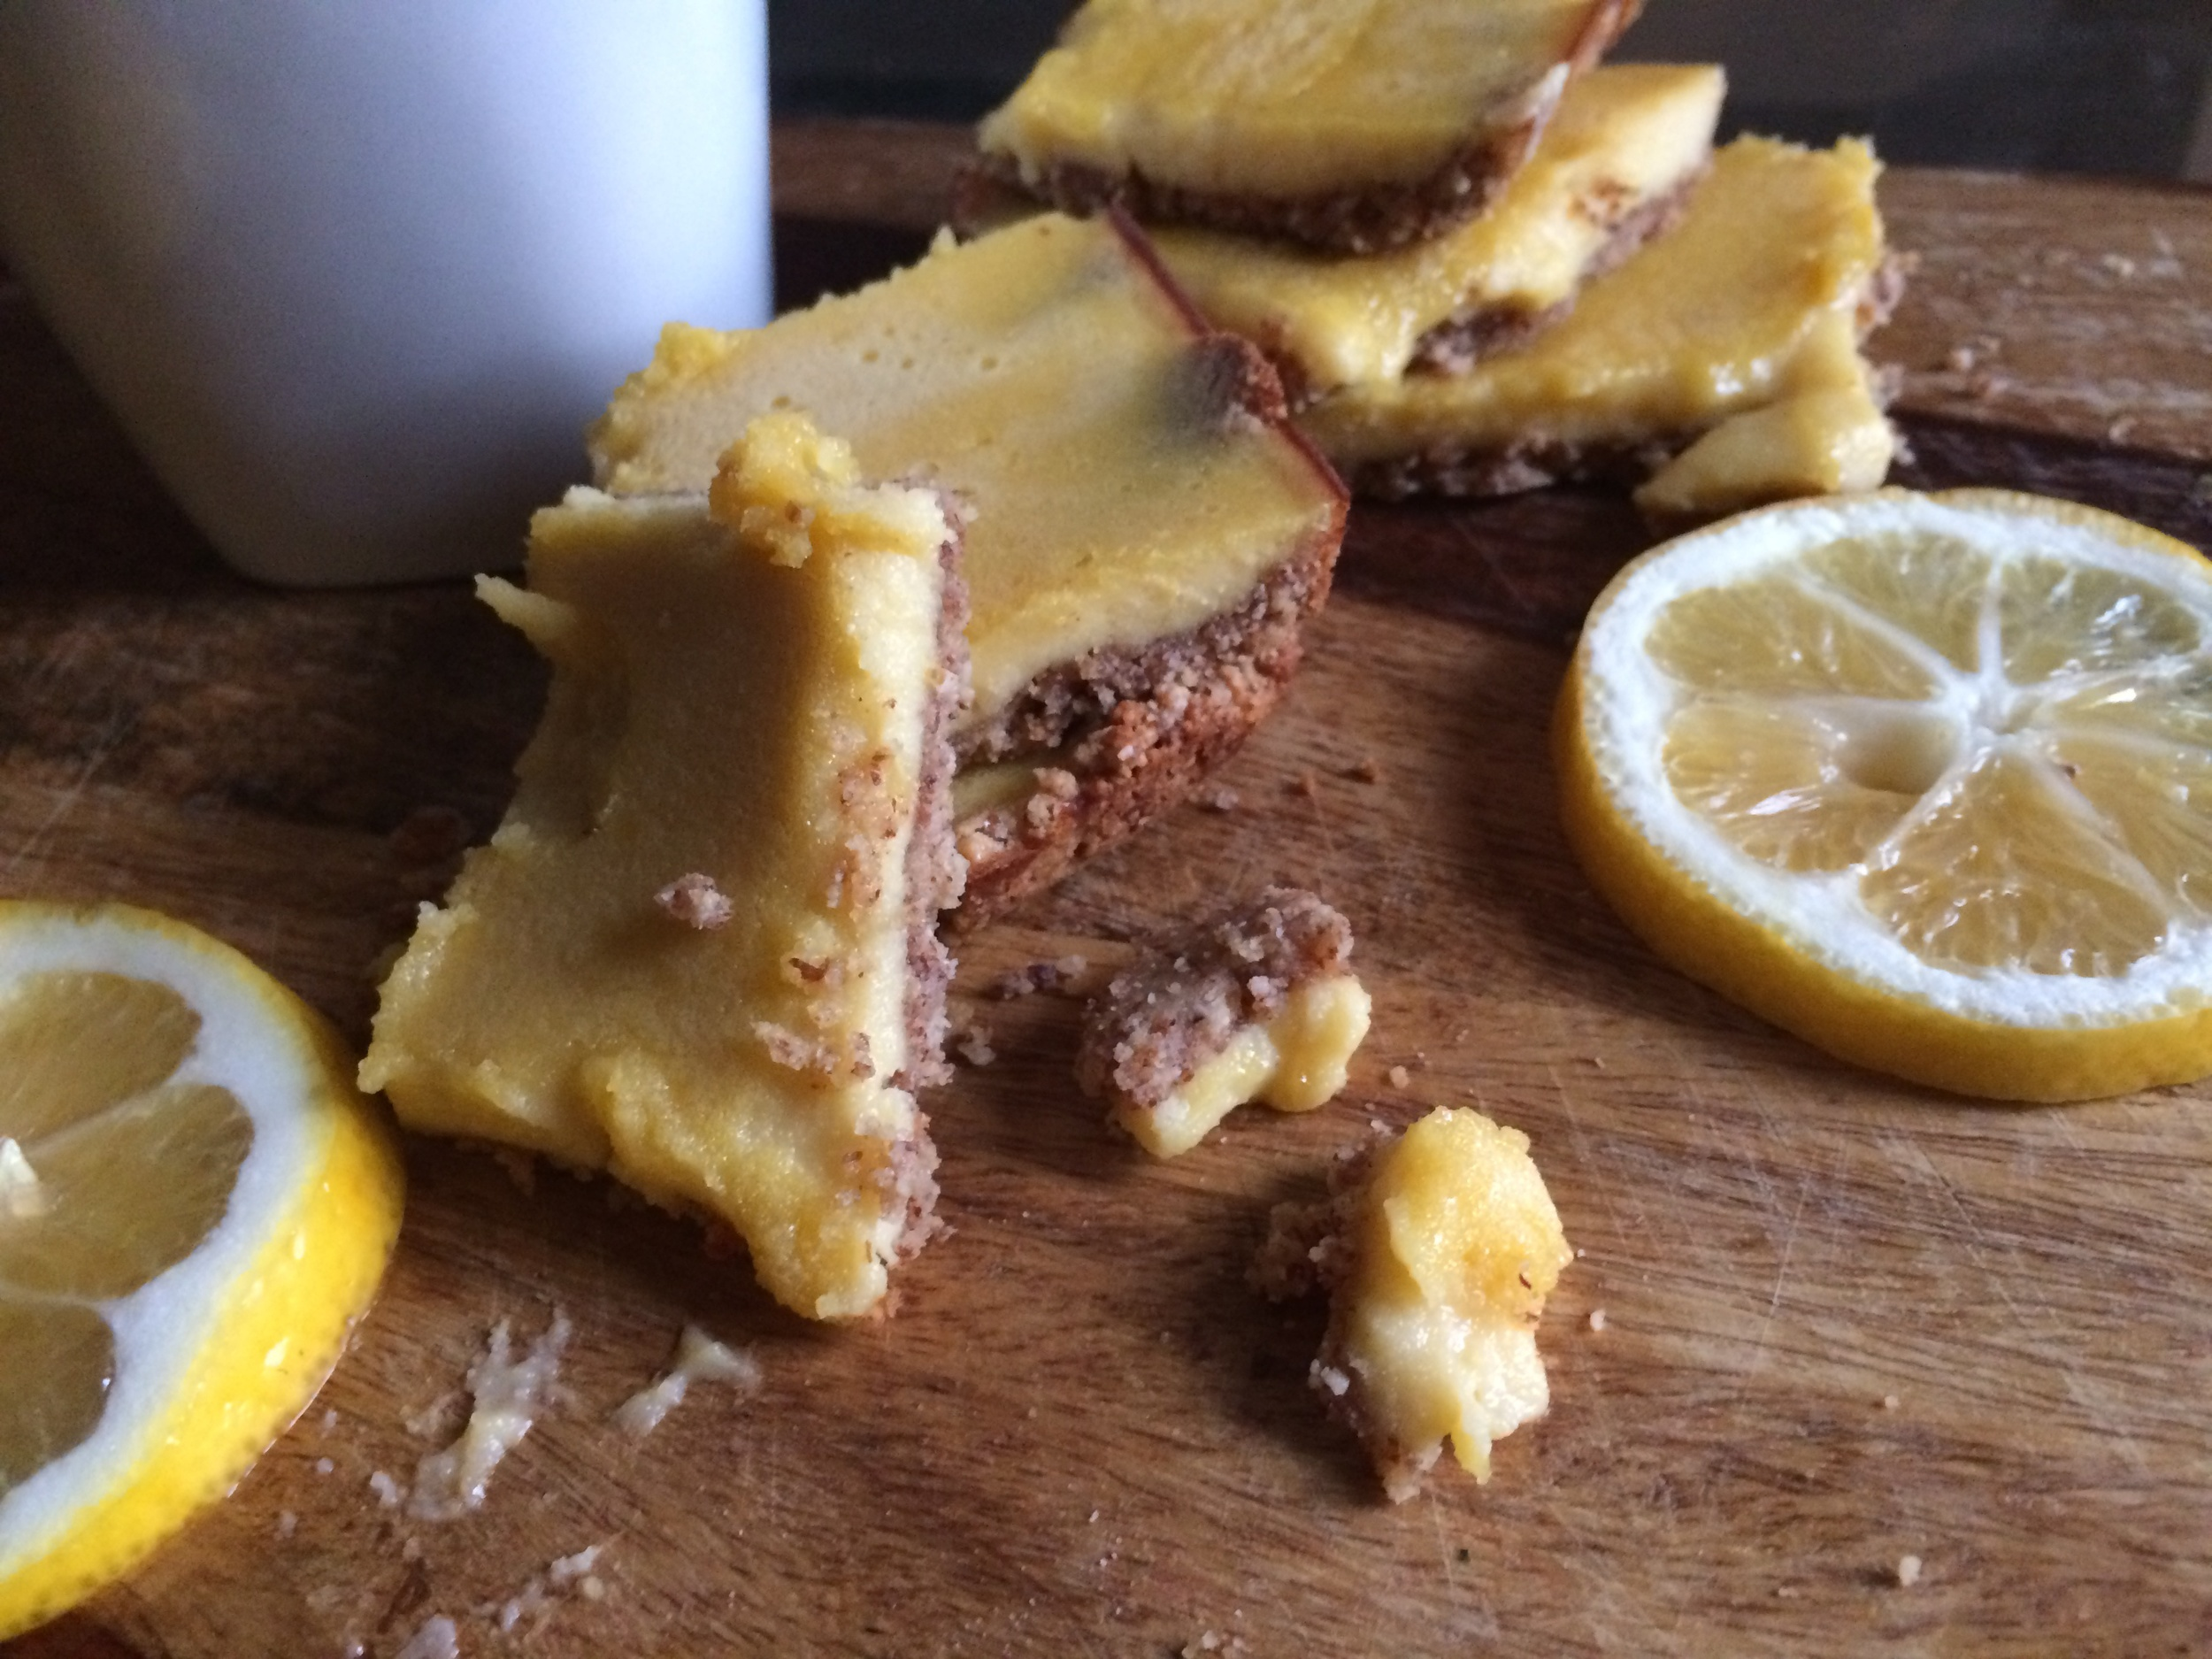 This photo of my  Paleo Lemon Bars  was taken with the iPhone about 3 inches away from the bars themselves.